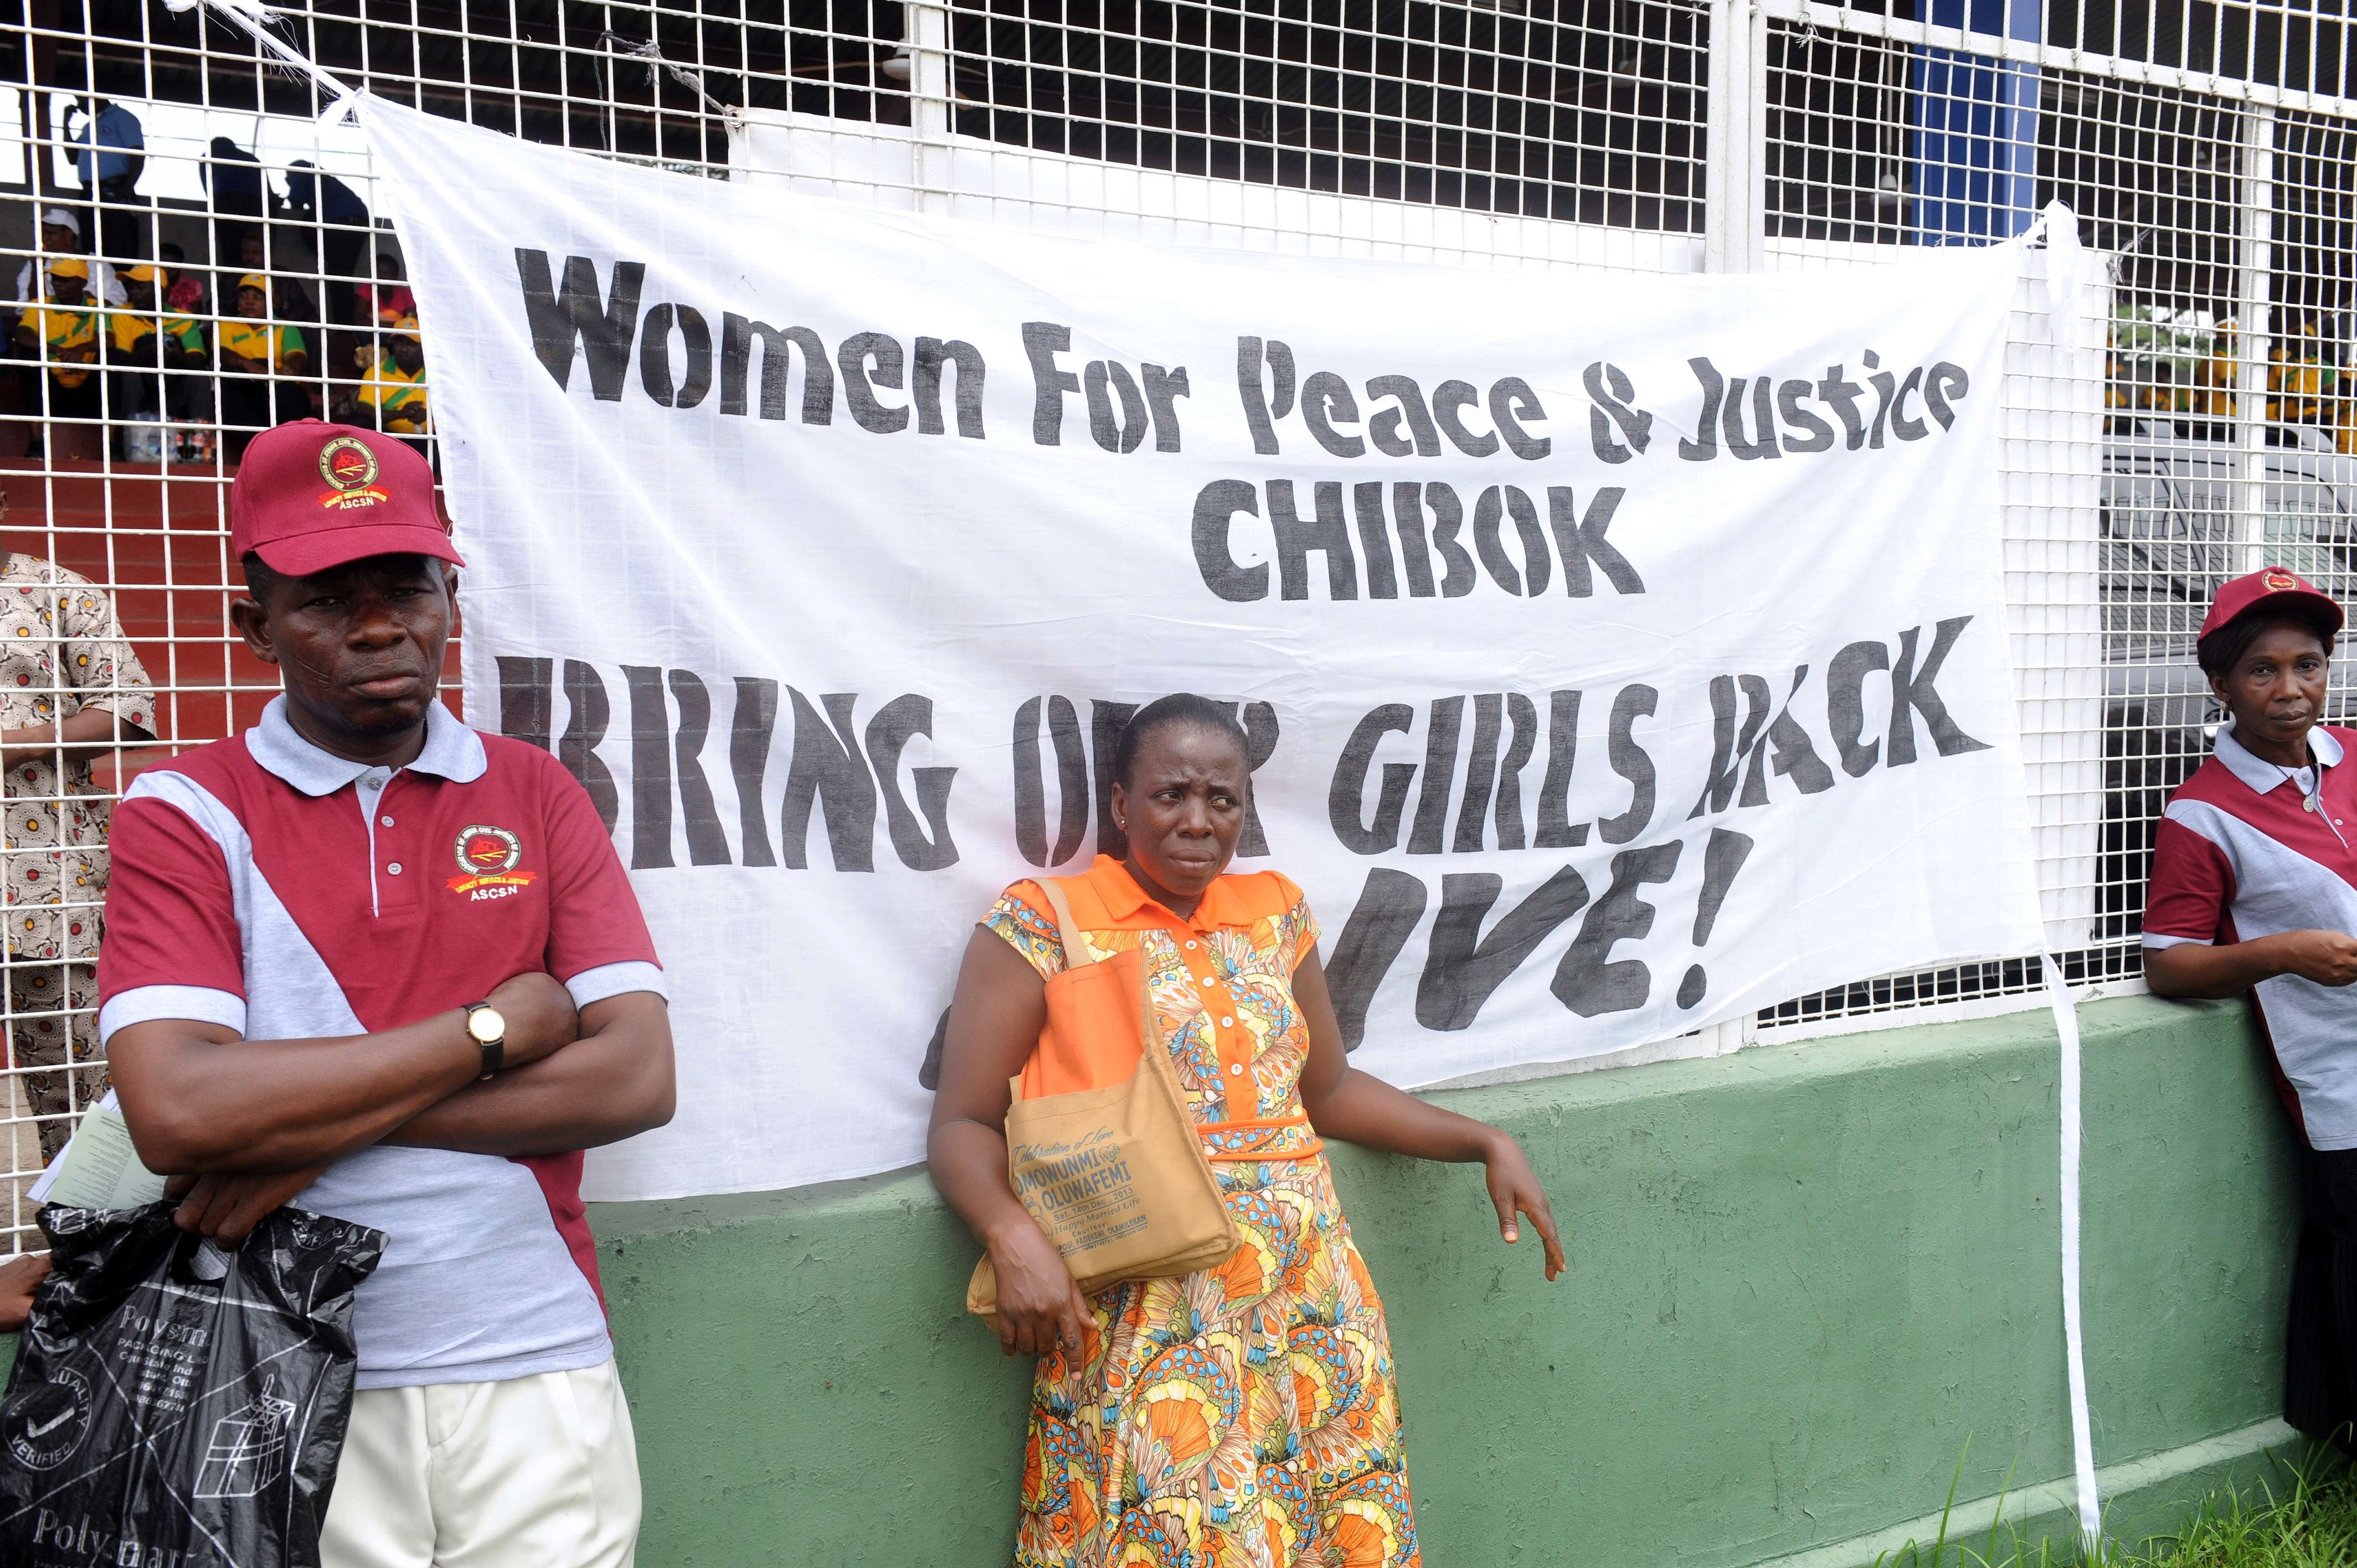 Workers lean on a banner as they press for the release of the schoolgirls kidnapped by Boko Haram more than two weeks ago during a workers' rally in Lagos on May 1, 2014.  (AFP Photo)